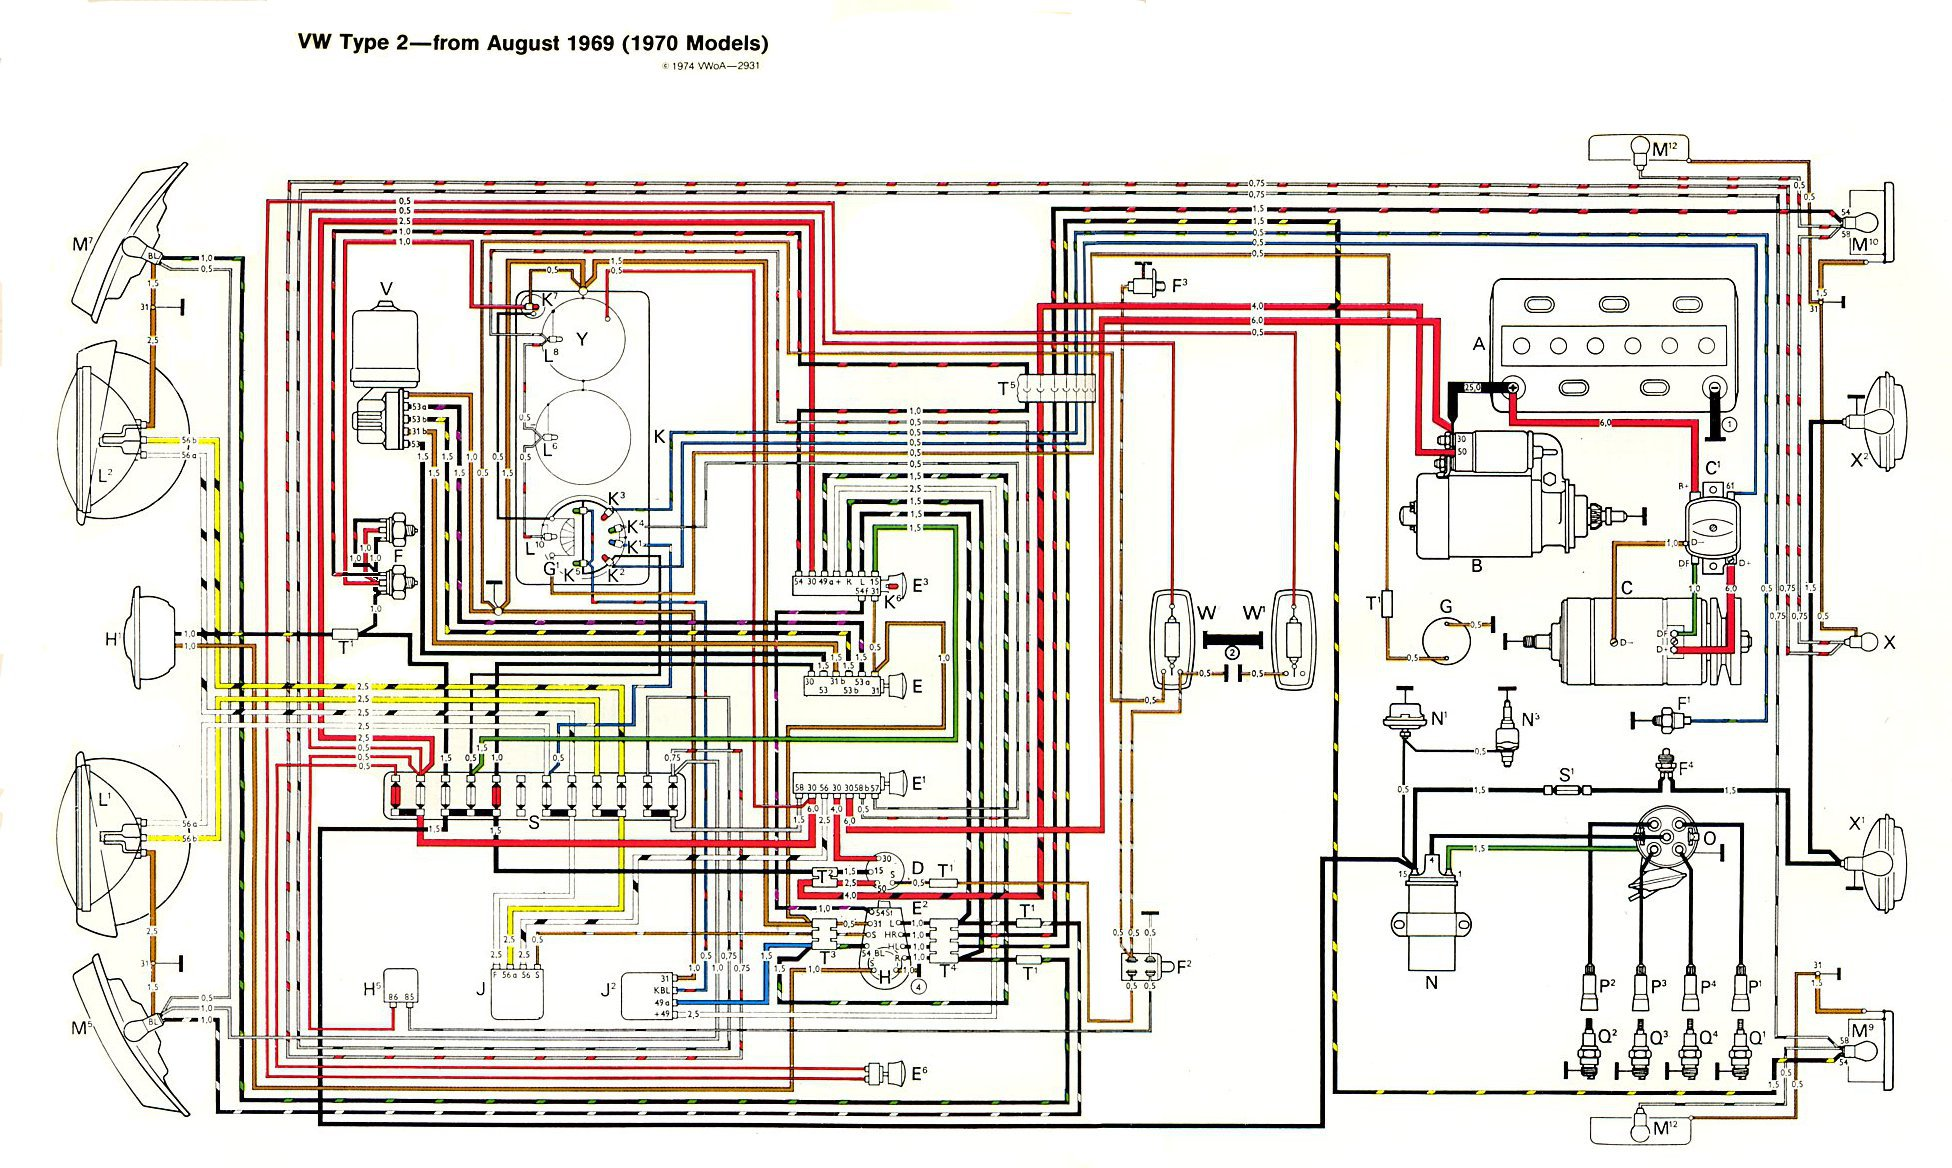 baybus_70 thesamba com type 2 wiring diagrams 1971 vw bus wiring diagram at love-stories.co